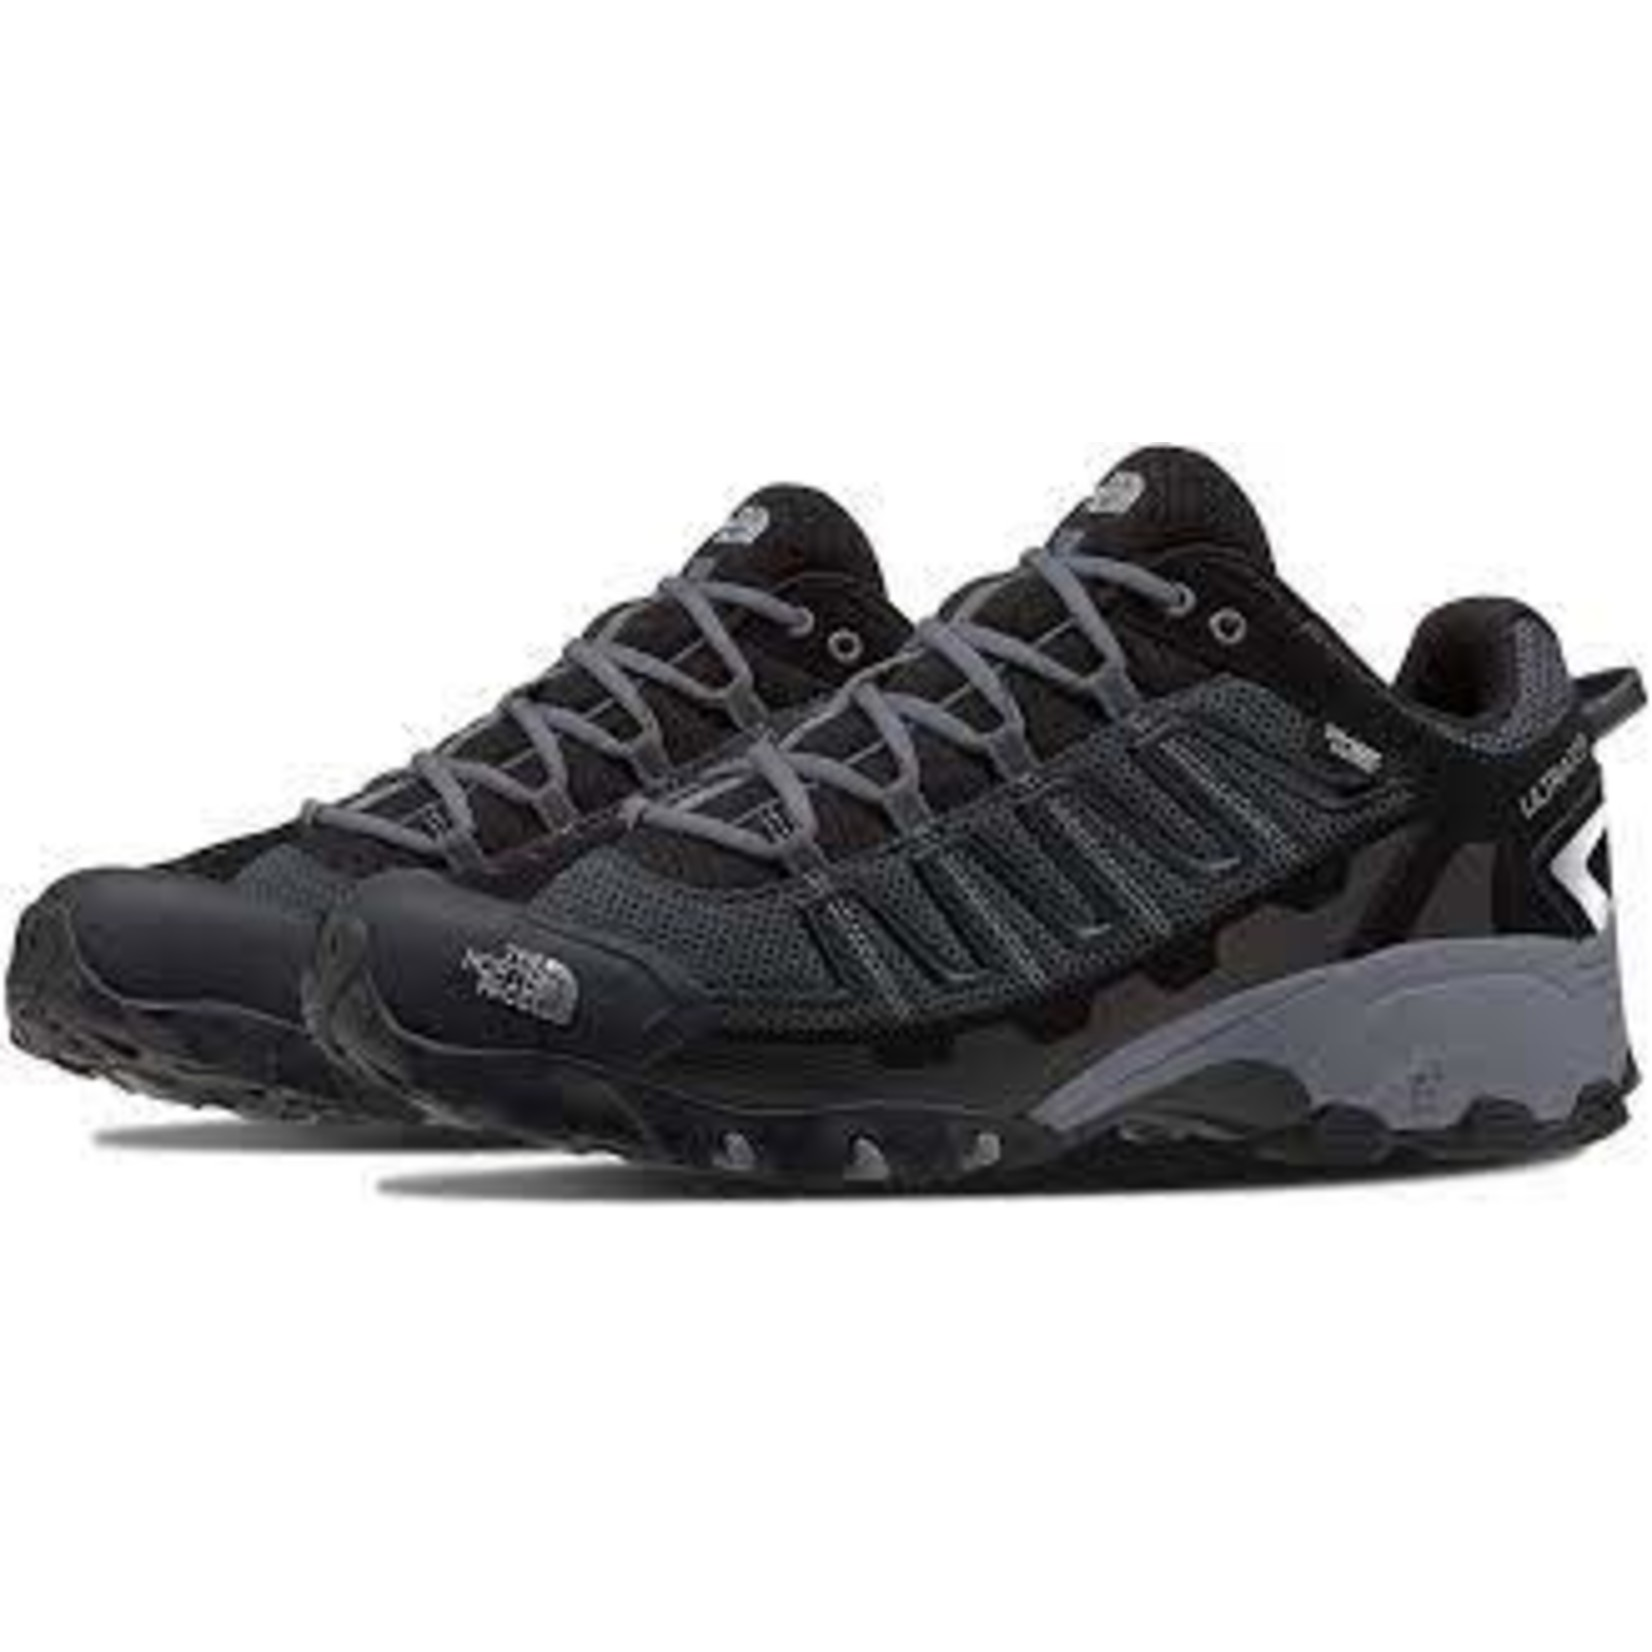 The North Face M Ultra 109 Waterproof